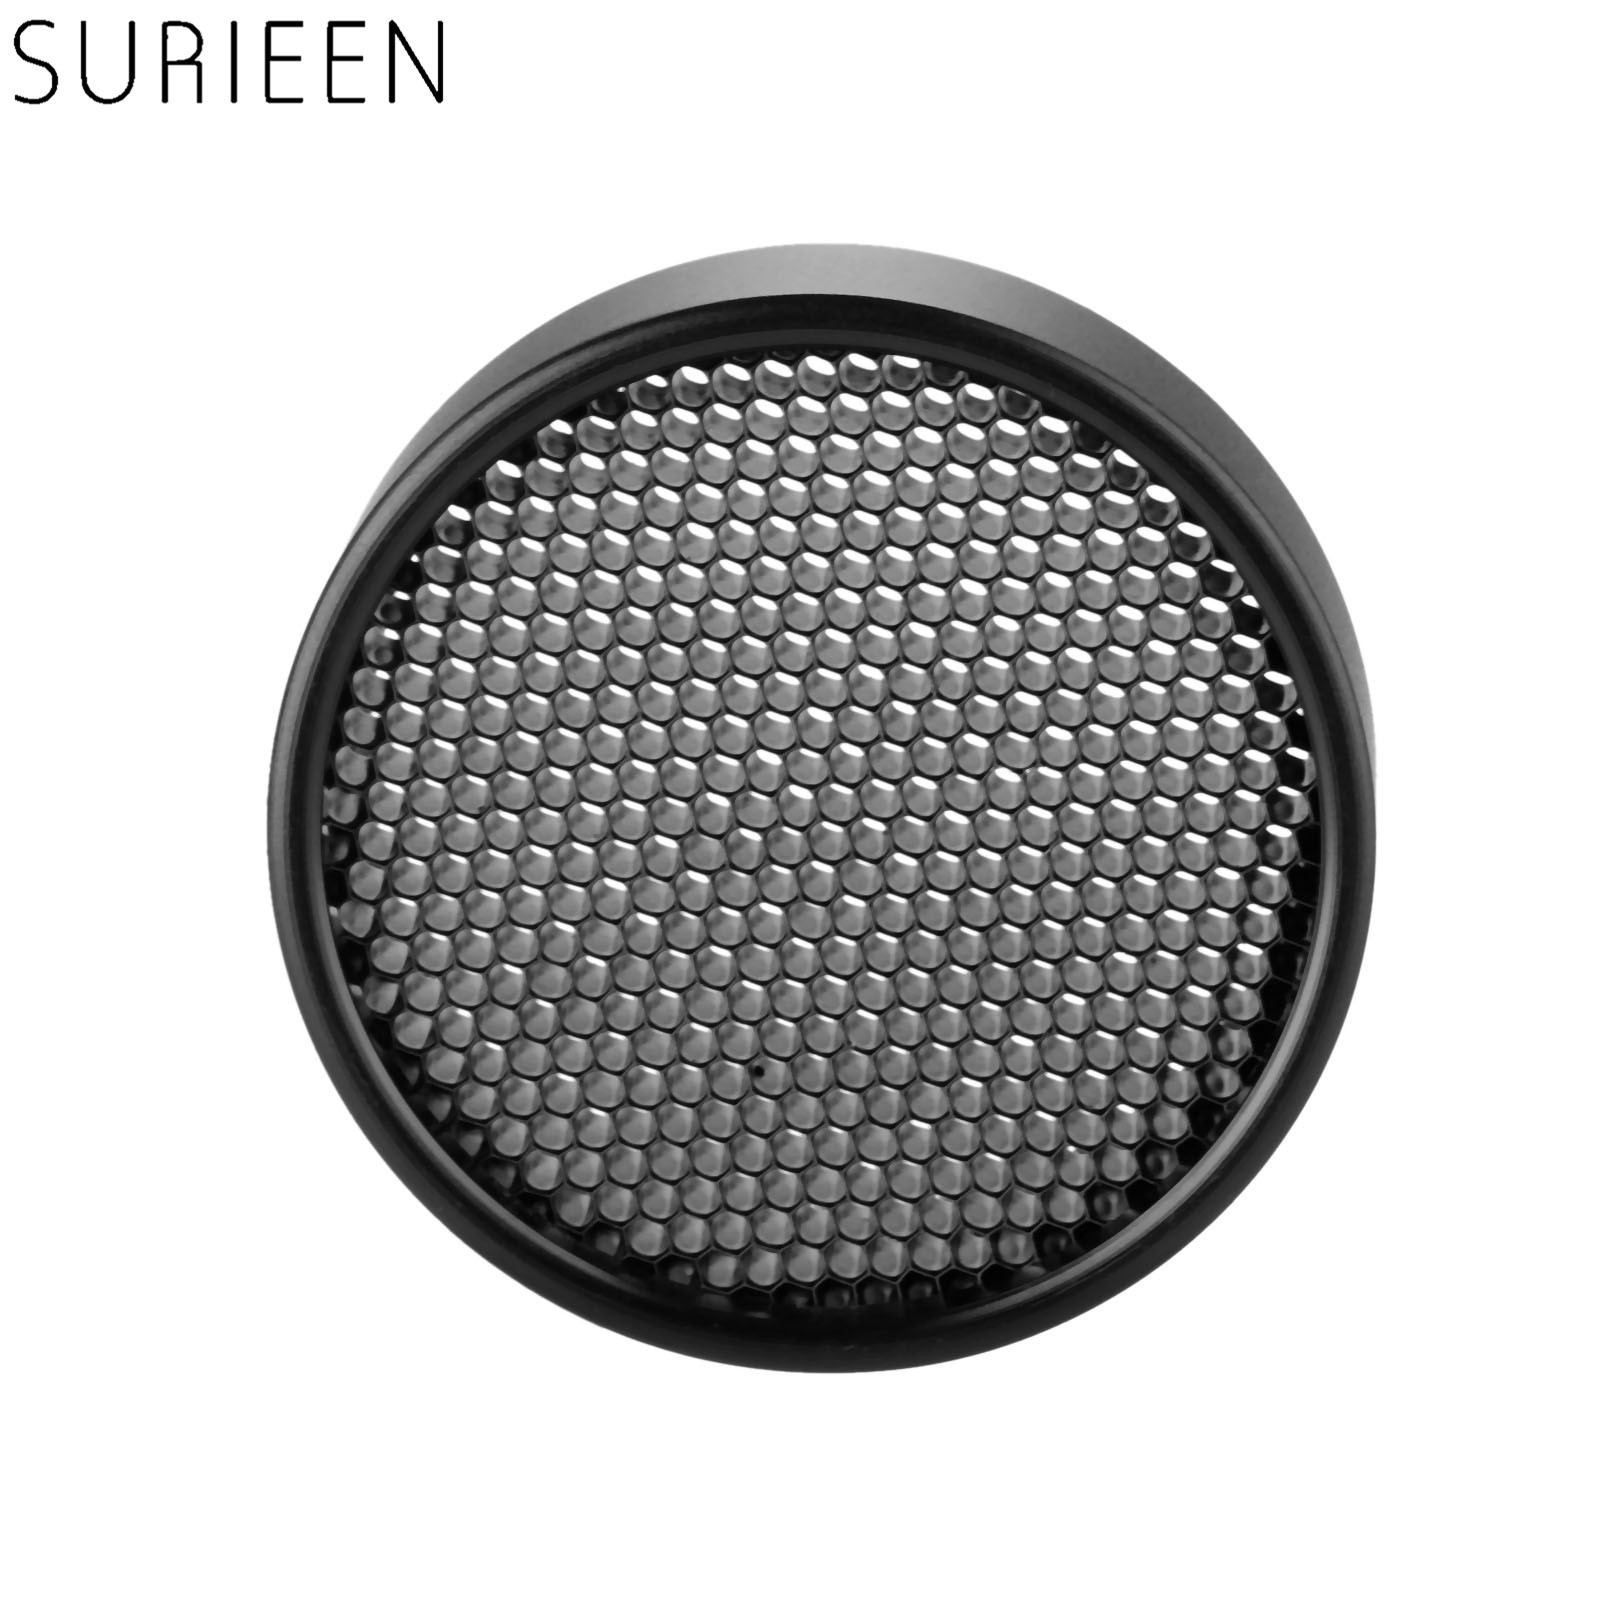 Killflash 40mm Anti-reflection Sunshade Protect Cover Cap For Trijicon DR 1-4X Optic Sight Scope Honeycomb Mesh Scope Protector